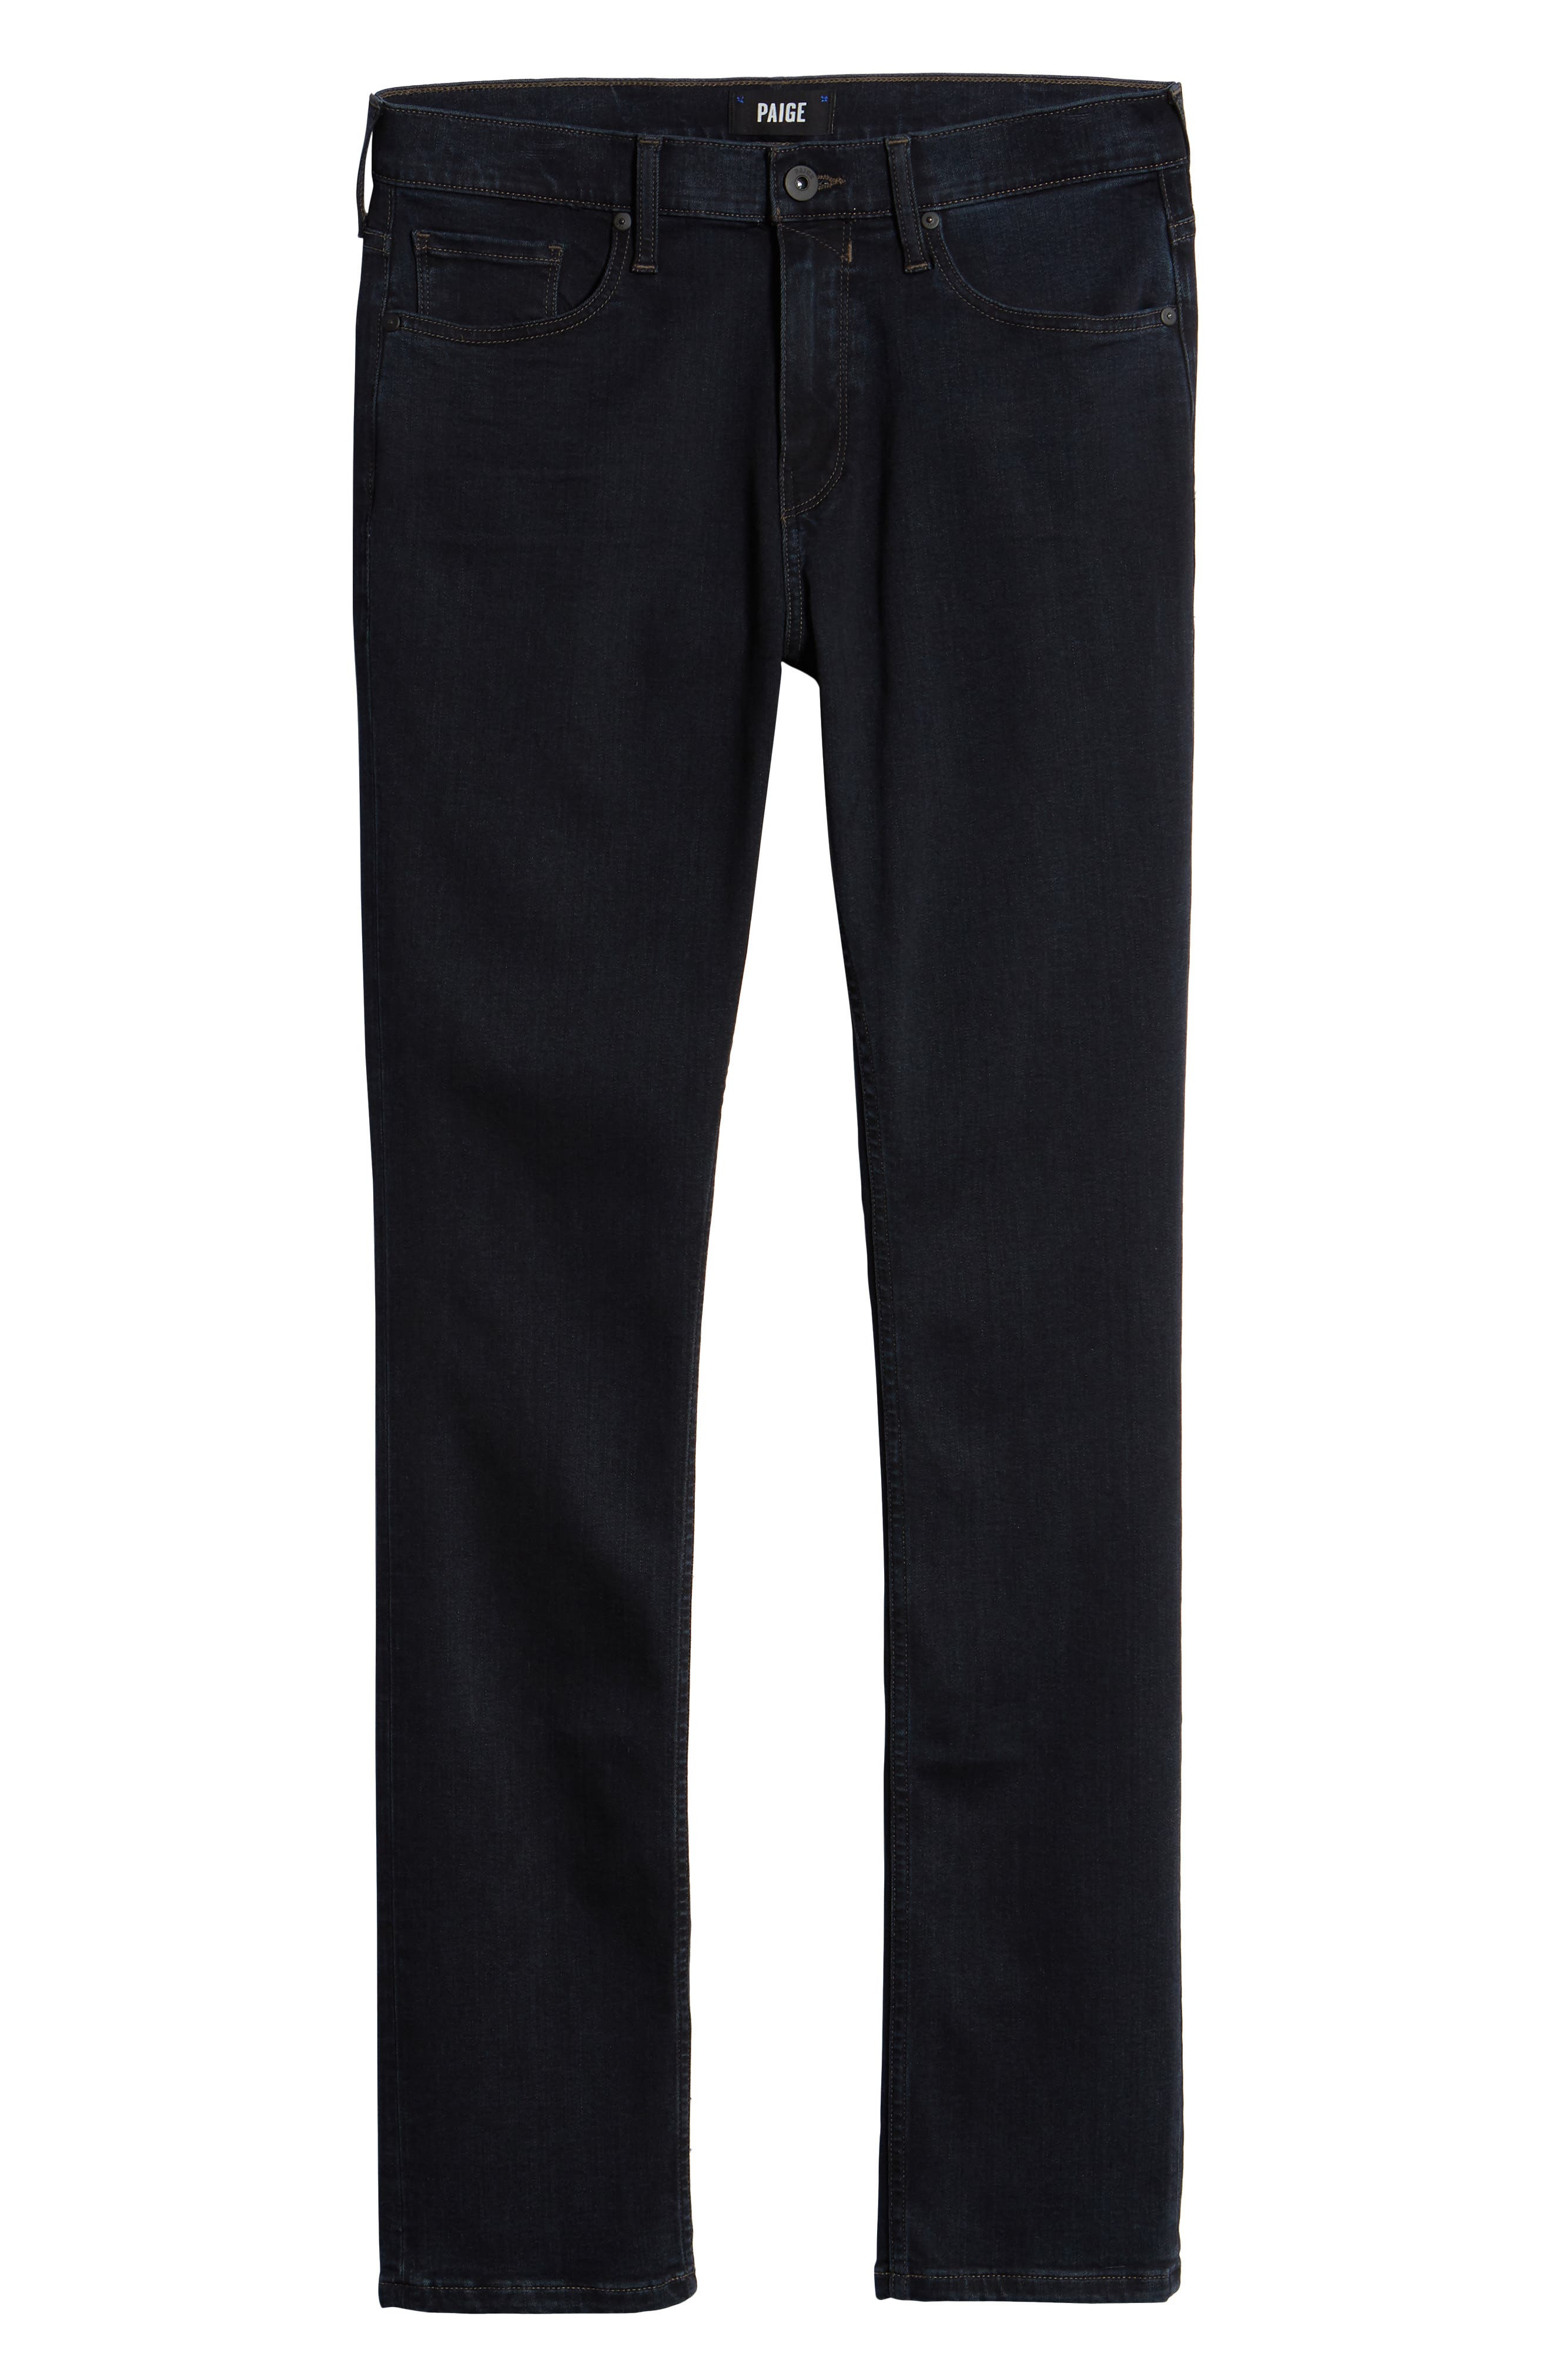 Federal Slim Straight Leg Jeans,                             Alternate thumbnail 6, color,                             CRAINE